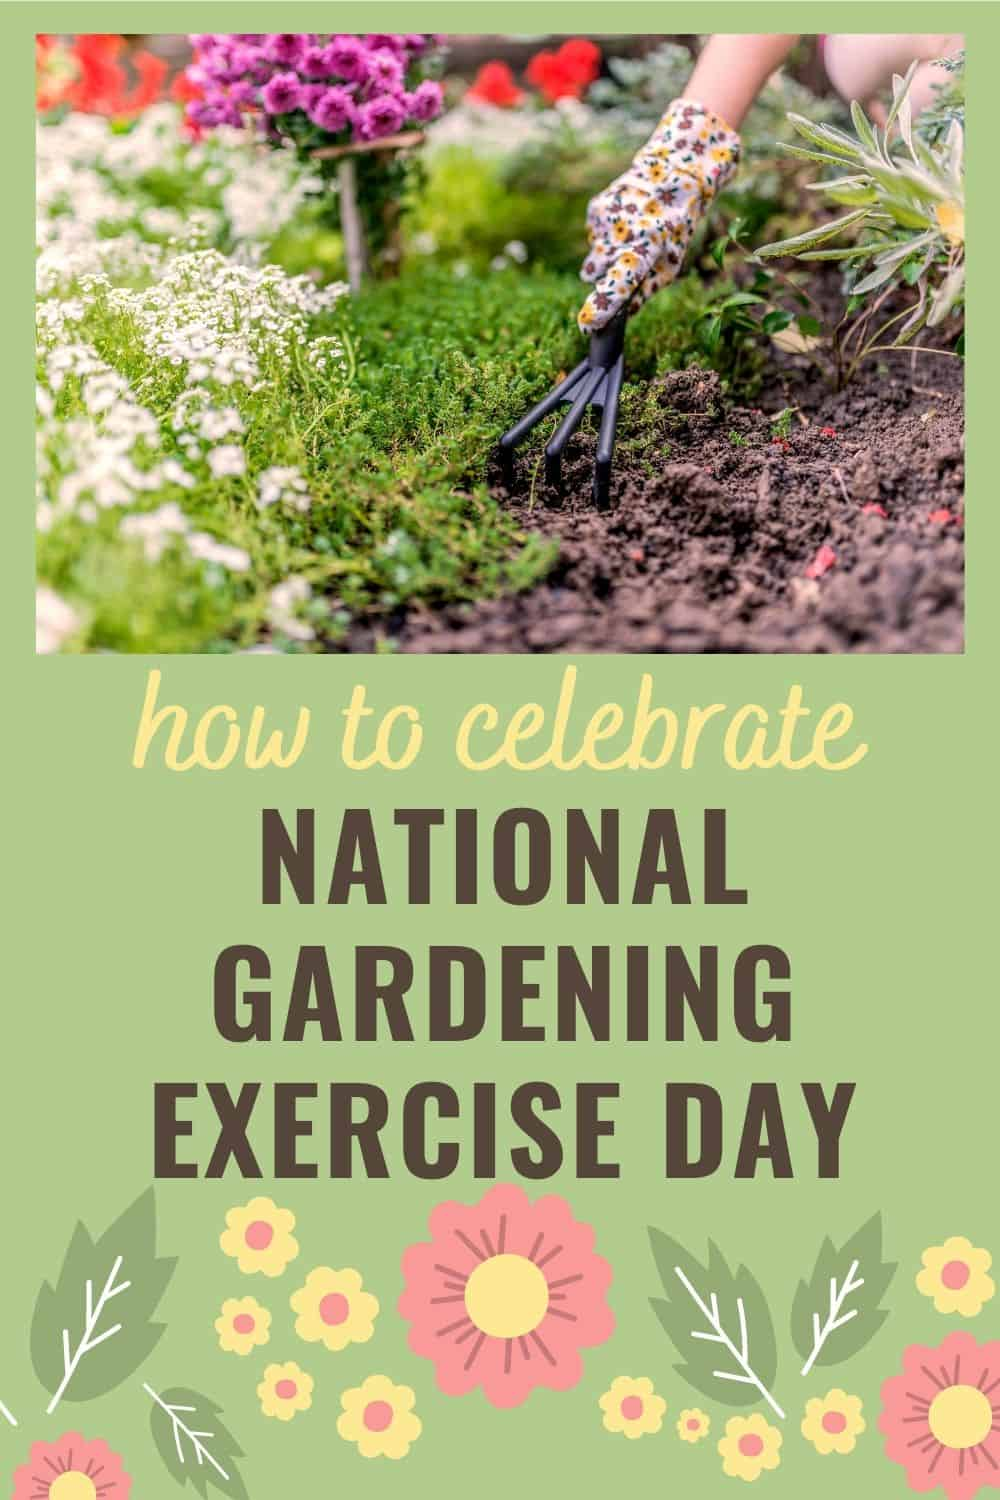 How to celebrate national gardening exercise day